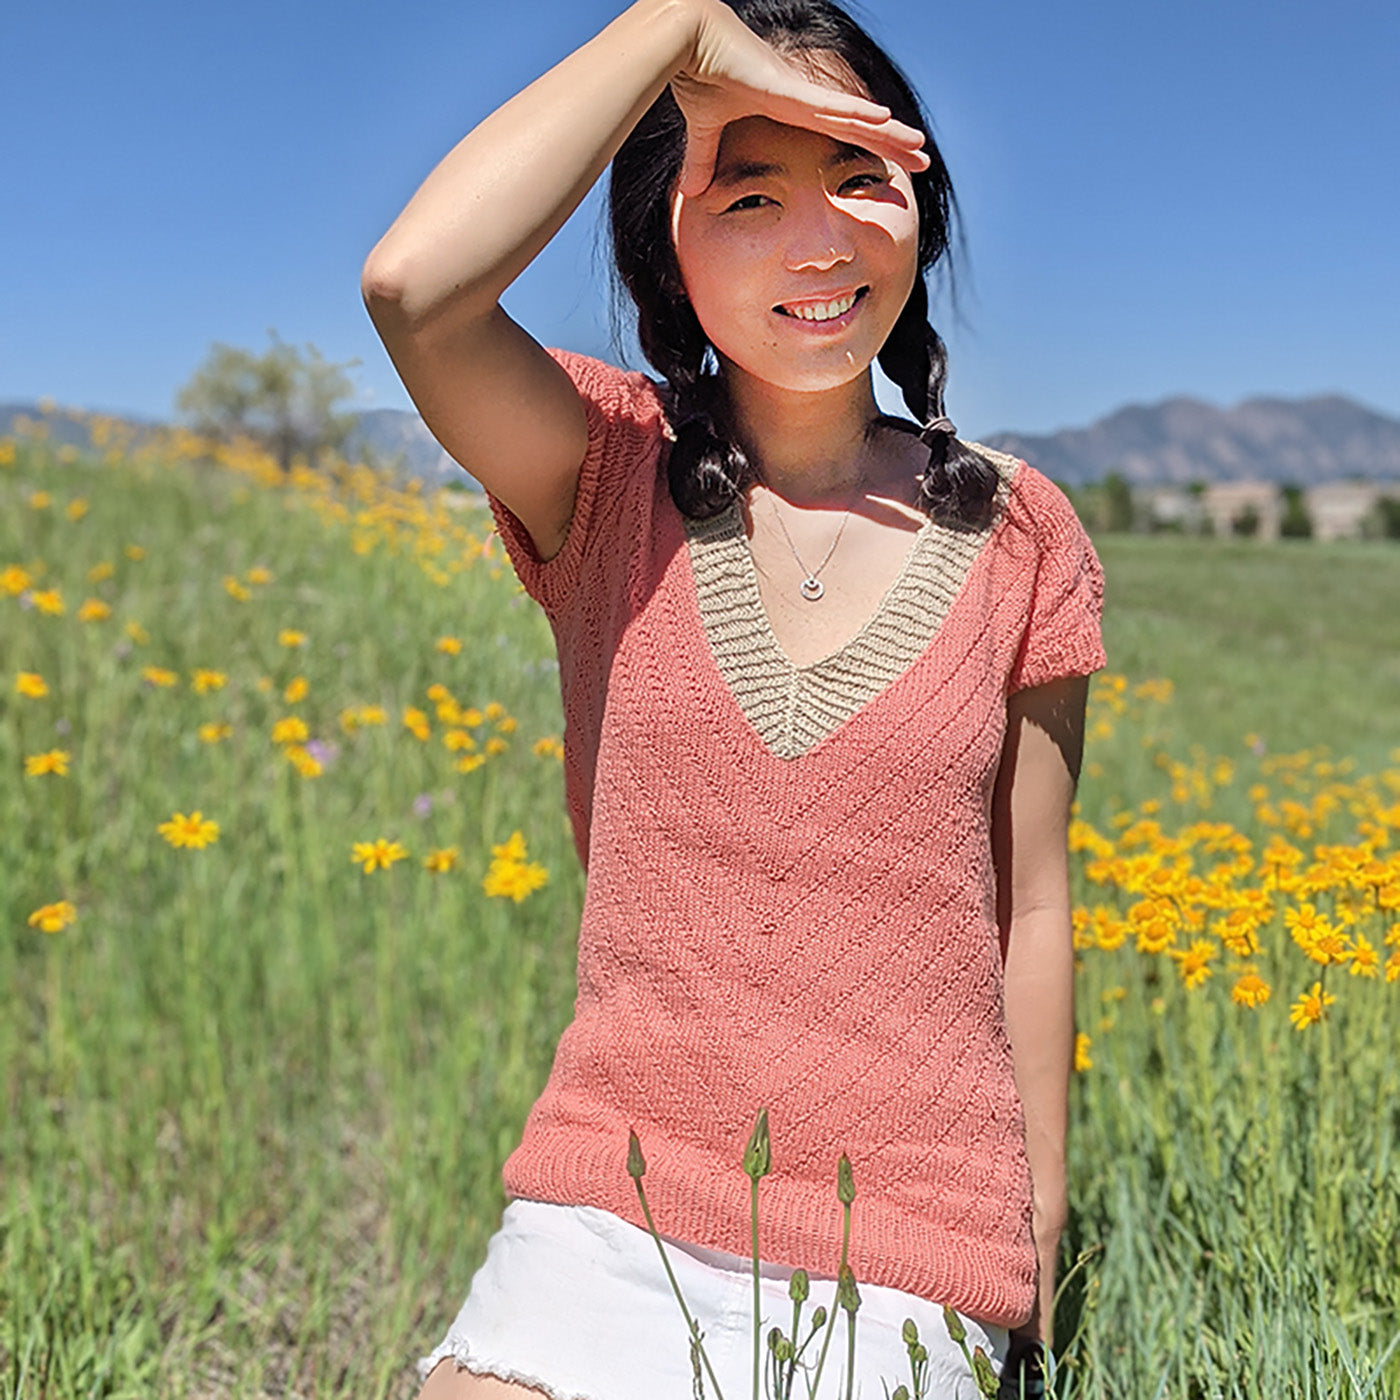 This is an image of a woman wearing a pink knitted sweater short sleeved shirt sitting in a field with yellow flowers